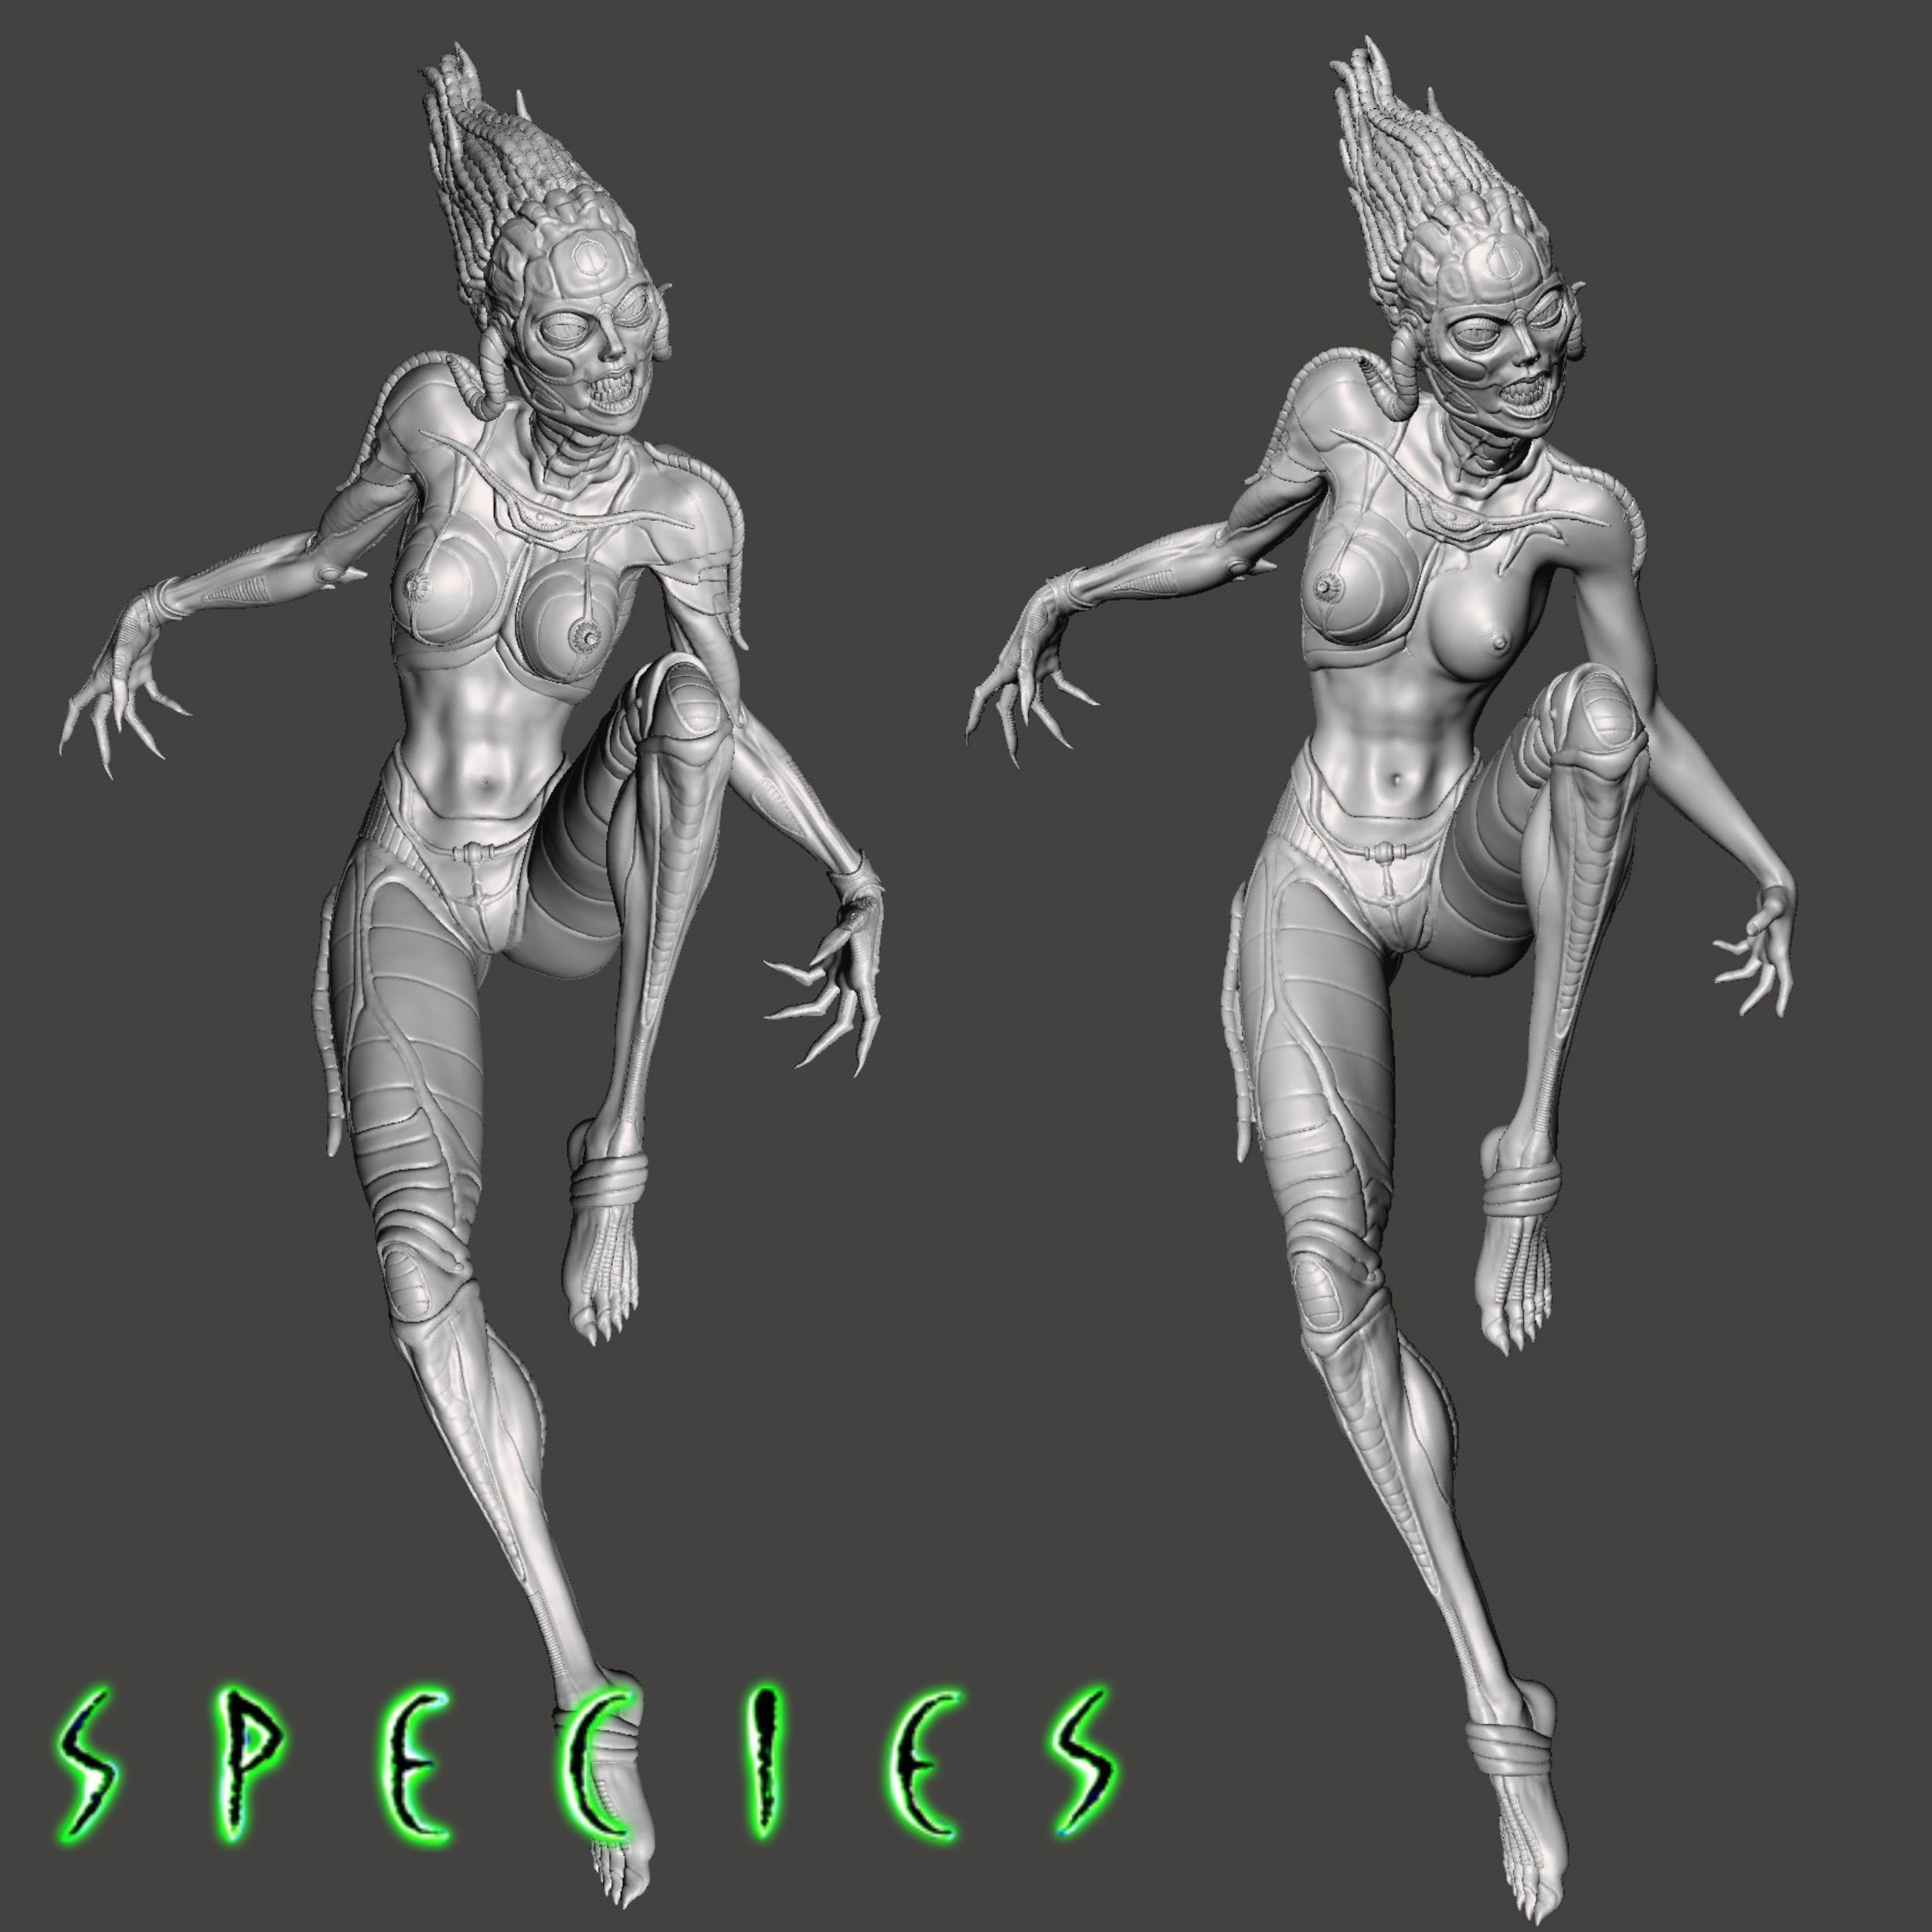 Image12.jpg Download STL file Alien Girl - SPECIES Part 1- by SPARX • 3D printable object, wikd2011